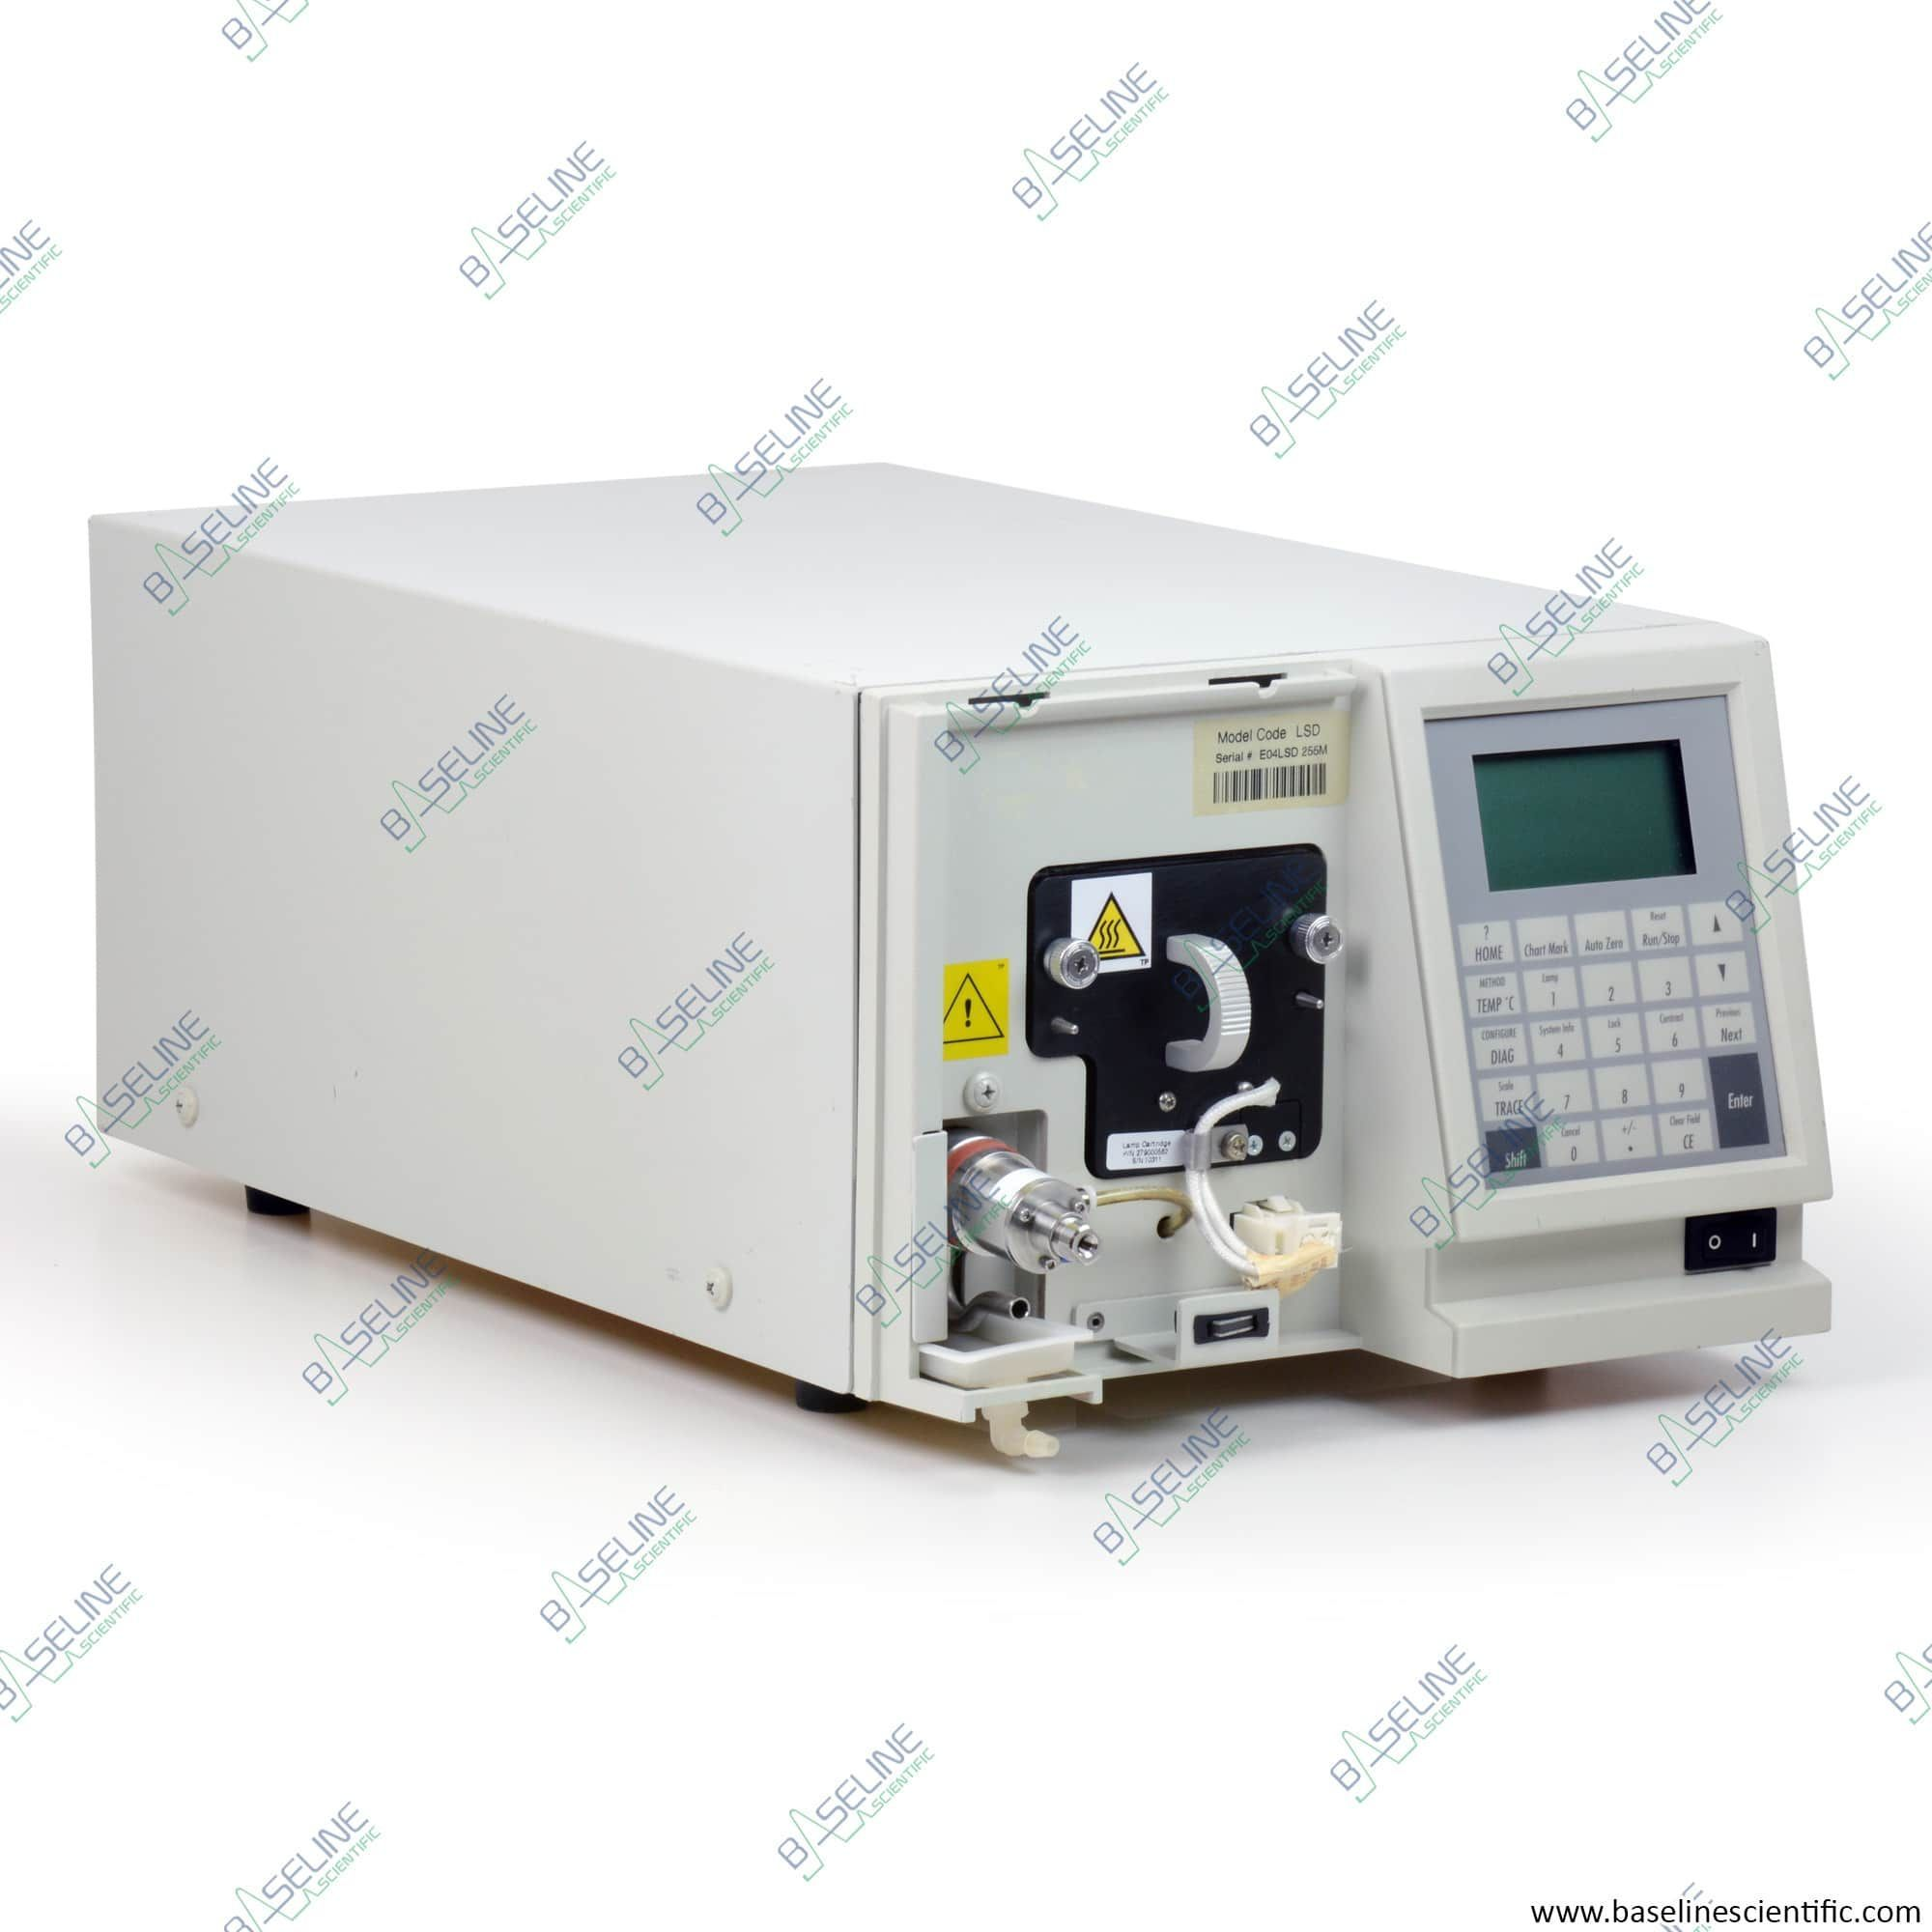 Refurbished Waters 2420 Evaporative Light Scattering Detector ELSD with One Year WARRANTY